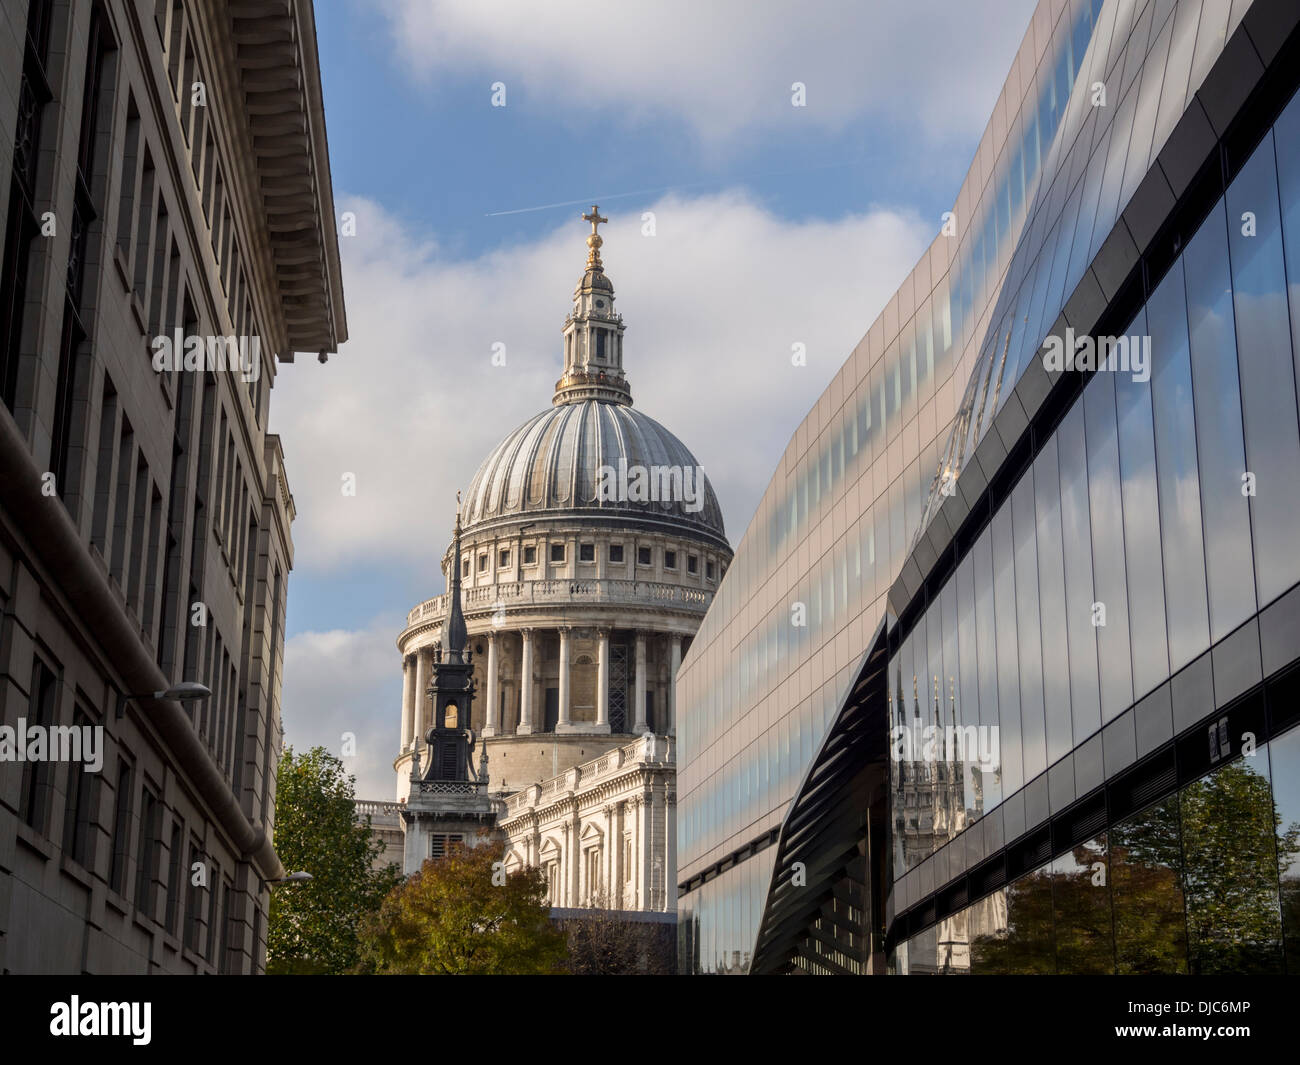 View of St Paul's Cathedral, London from One New Change shopping centre - Stock Image